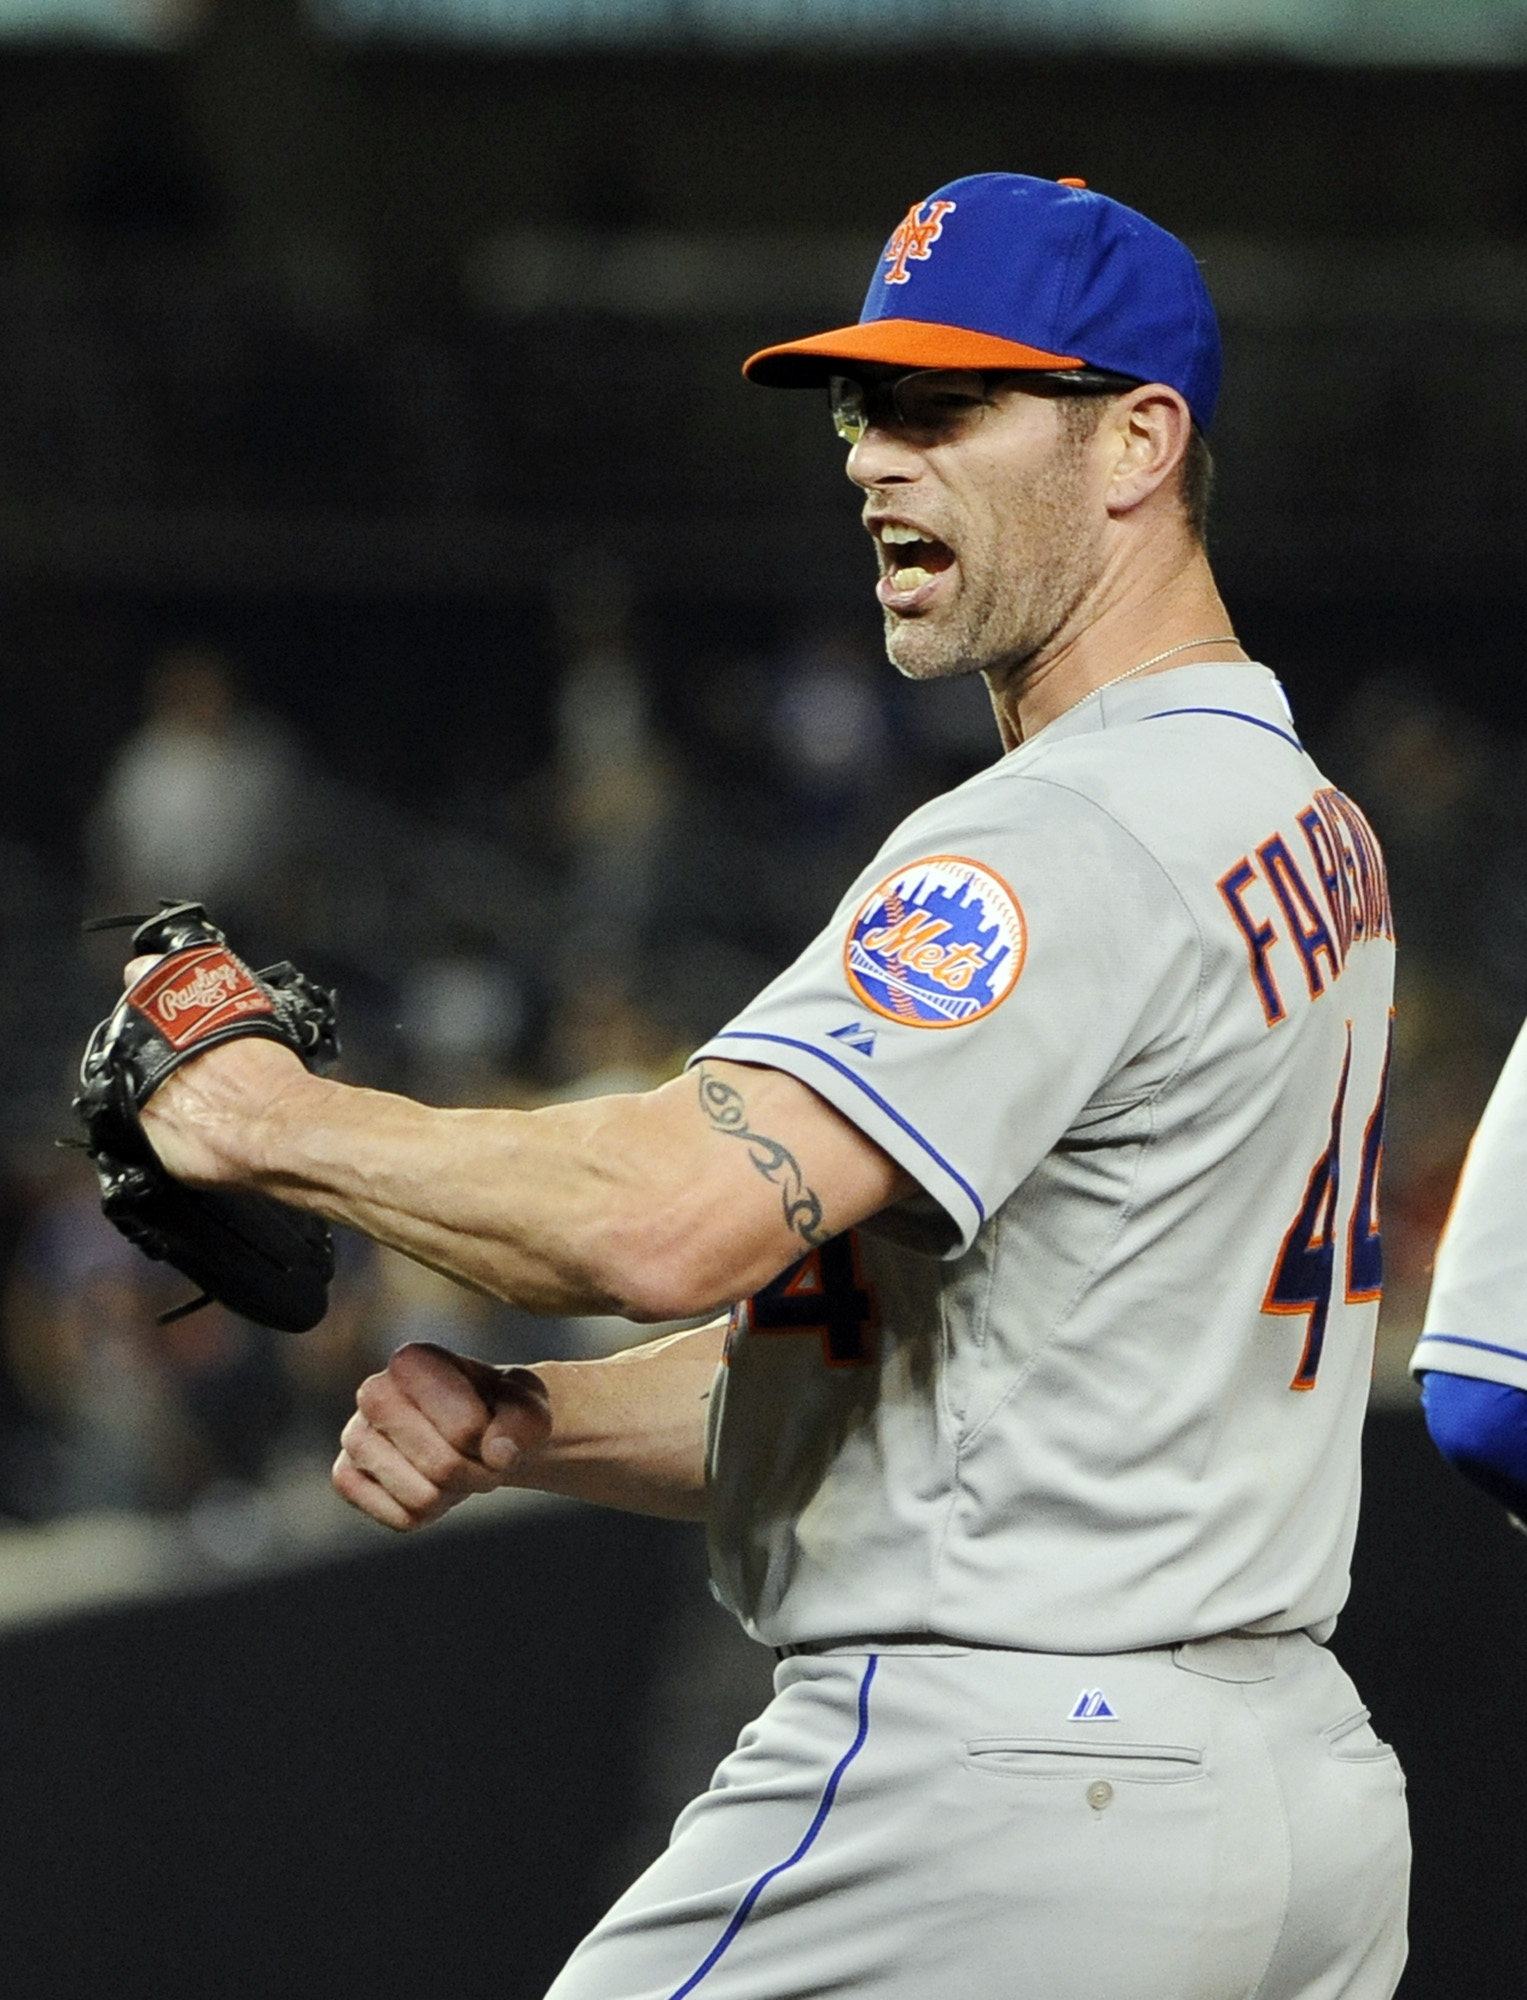 New York Mets relief pitcher Kyle Farnsworth celebrates after the Mets beat the New York Yankees 9-7 in an interleague baseball game at Yankee Stadium on Monday, May 12, 2014, in New York. (AP Photo/Kathy Kmonicek)